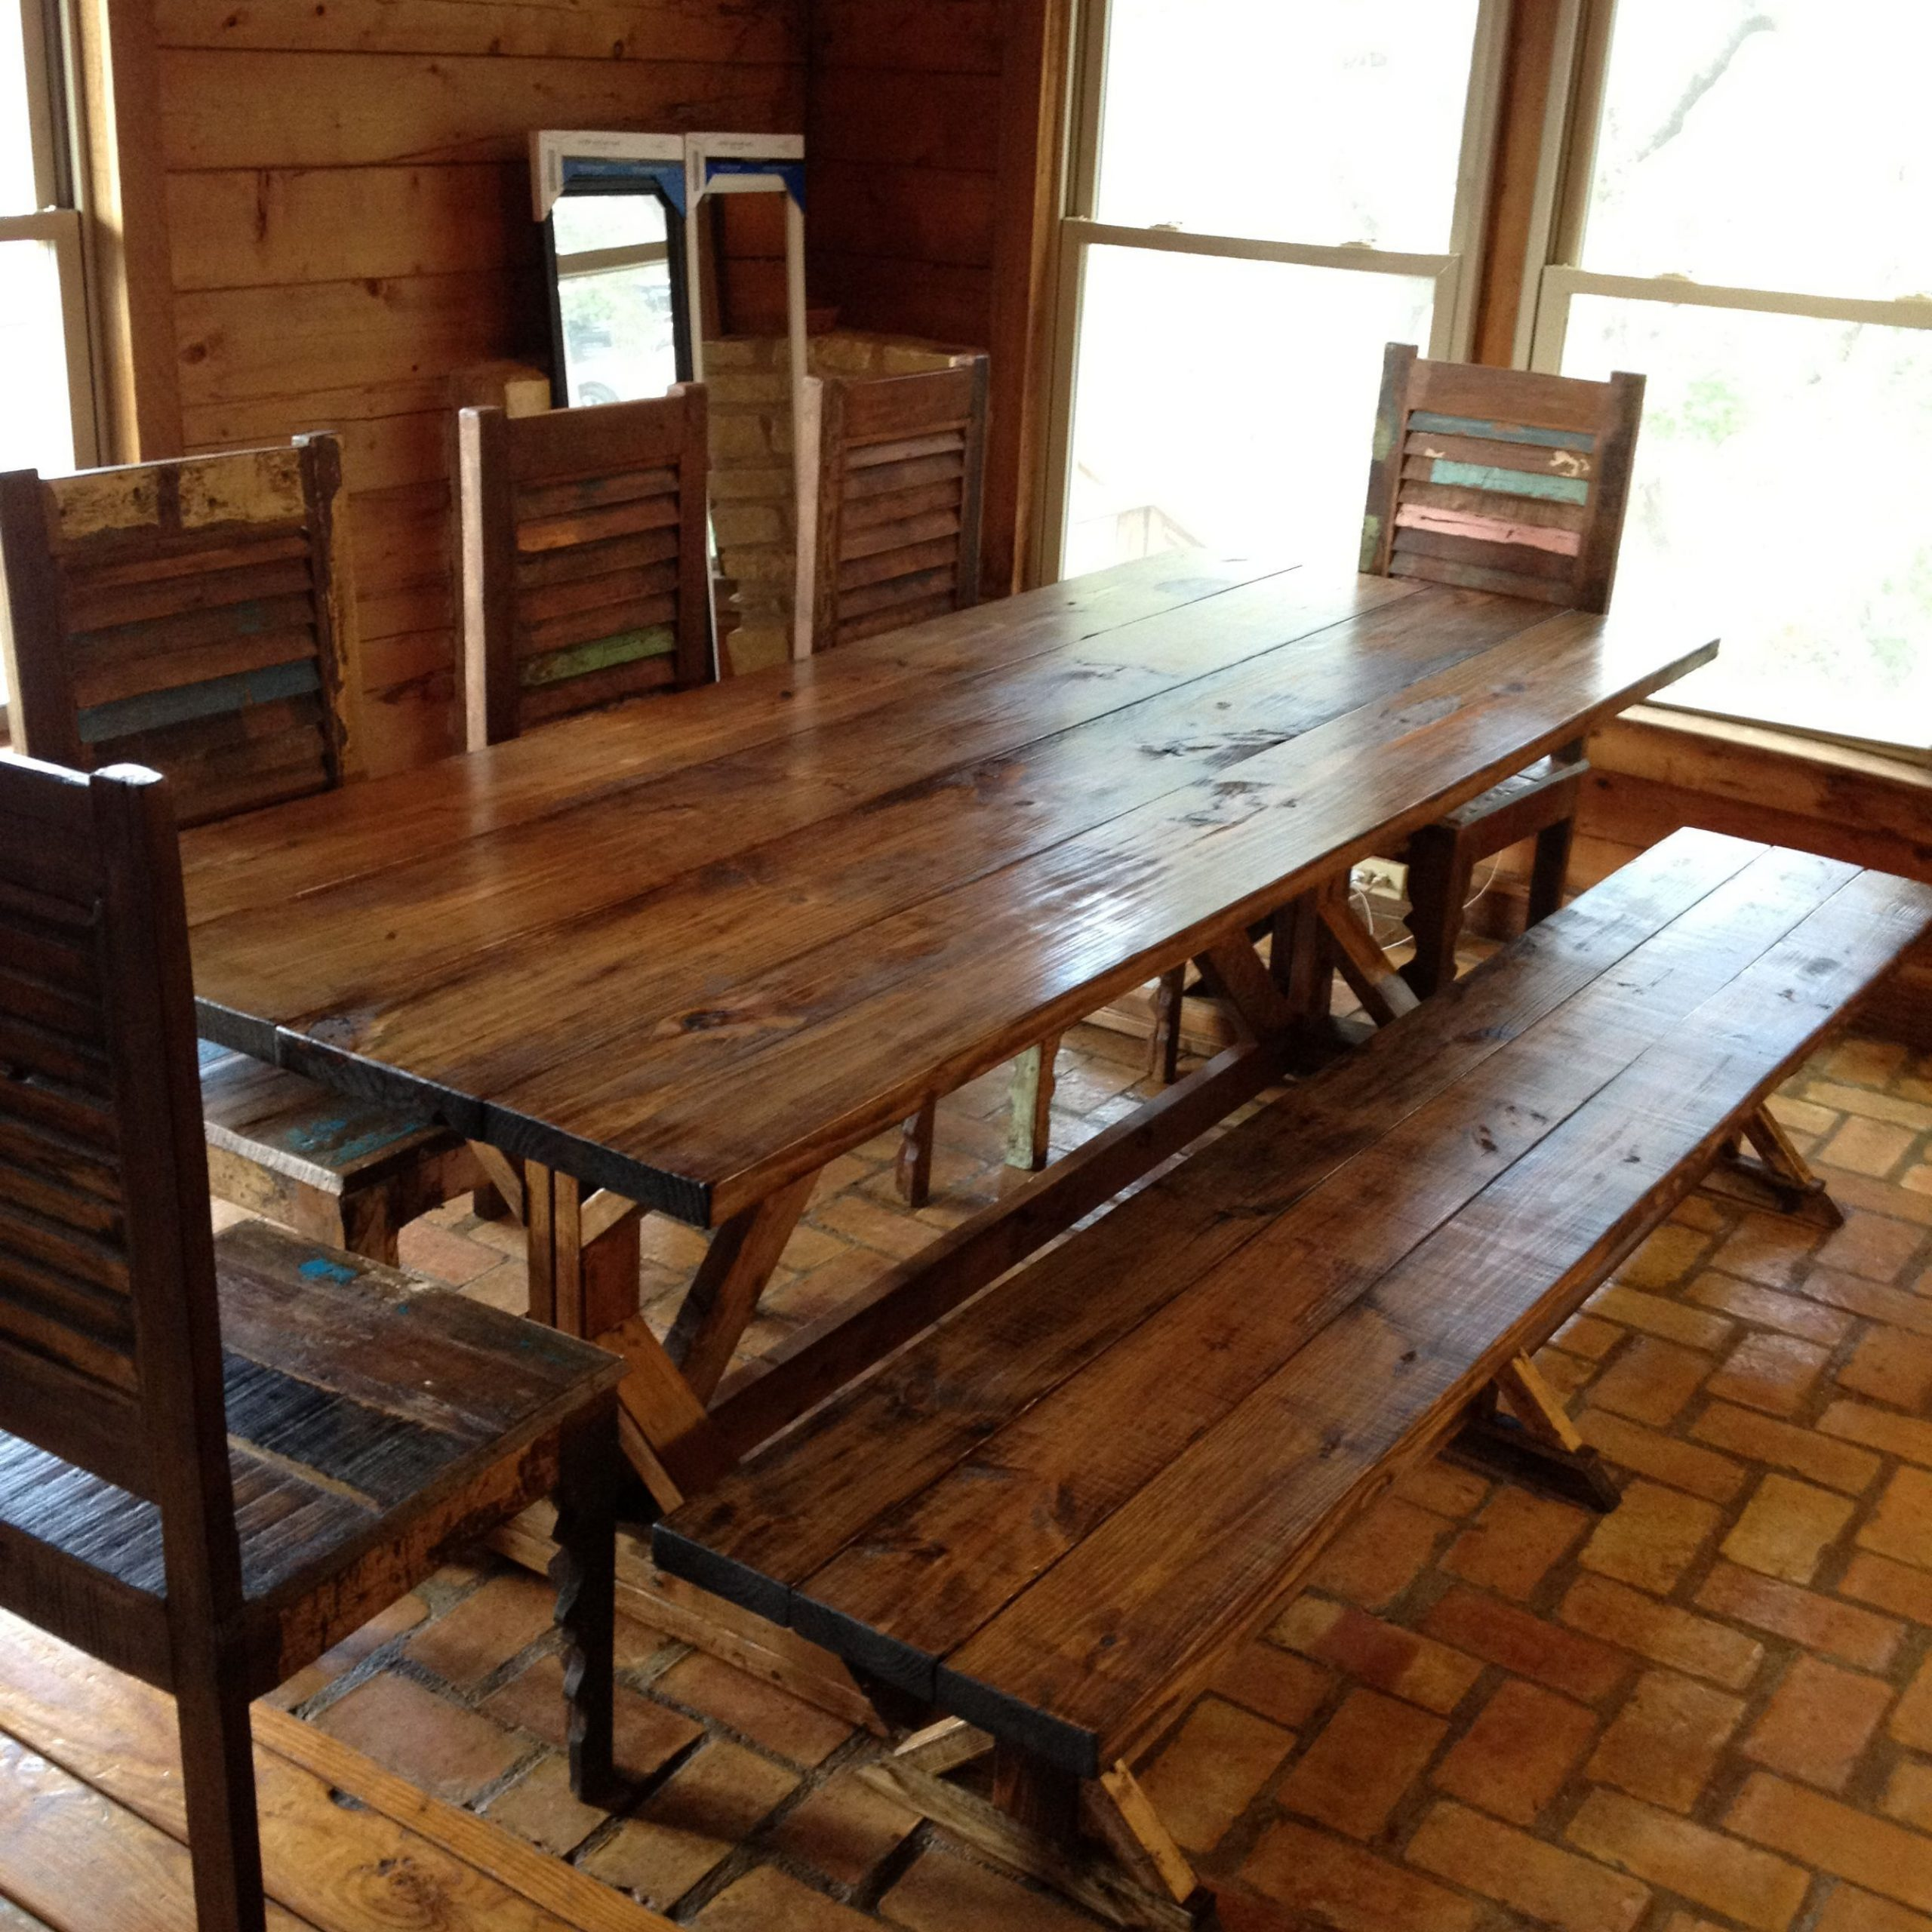 Small Rustic Look Dining Tables Pertaining To Most Current Rustic Dining Tables With Benches Rustic Dining Table Picnic (View 2 of 30)